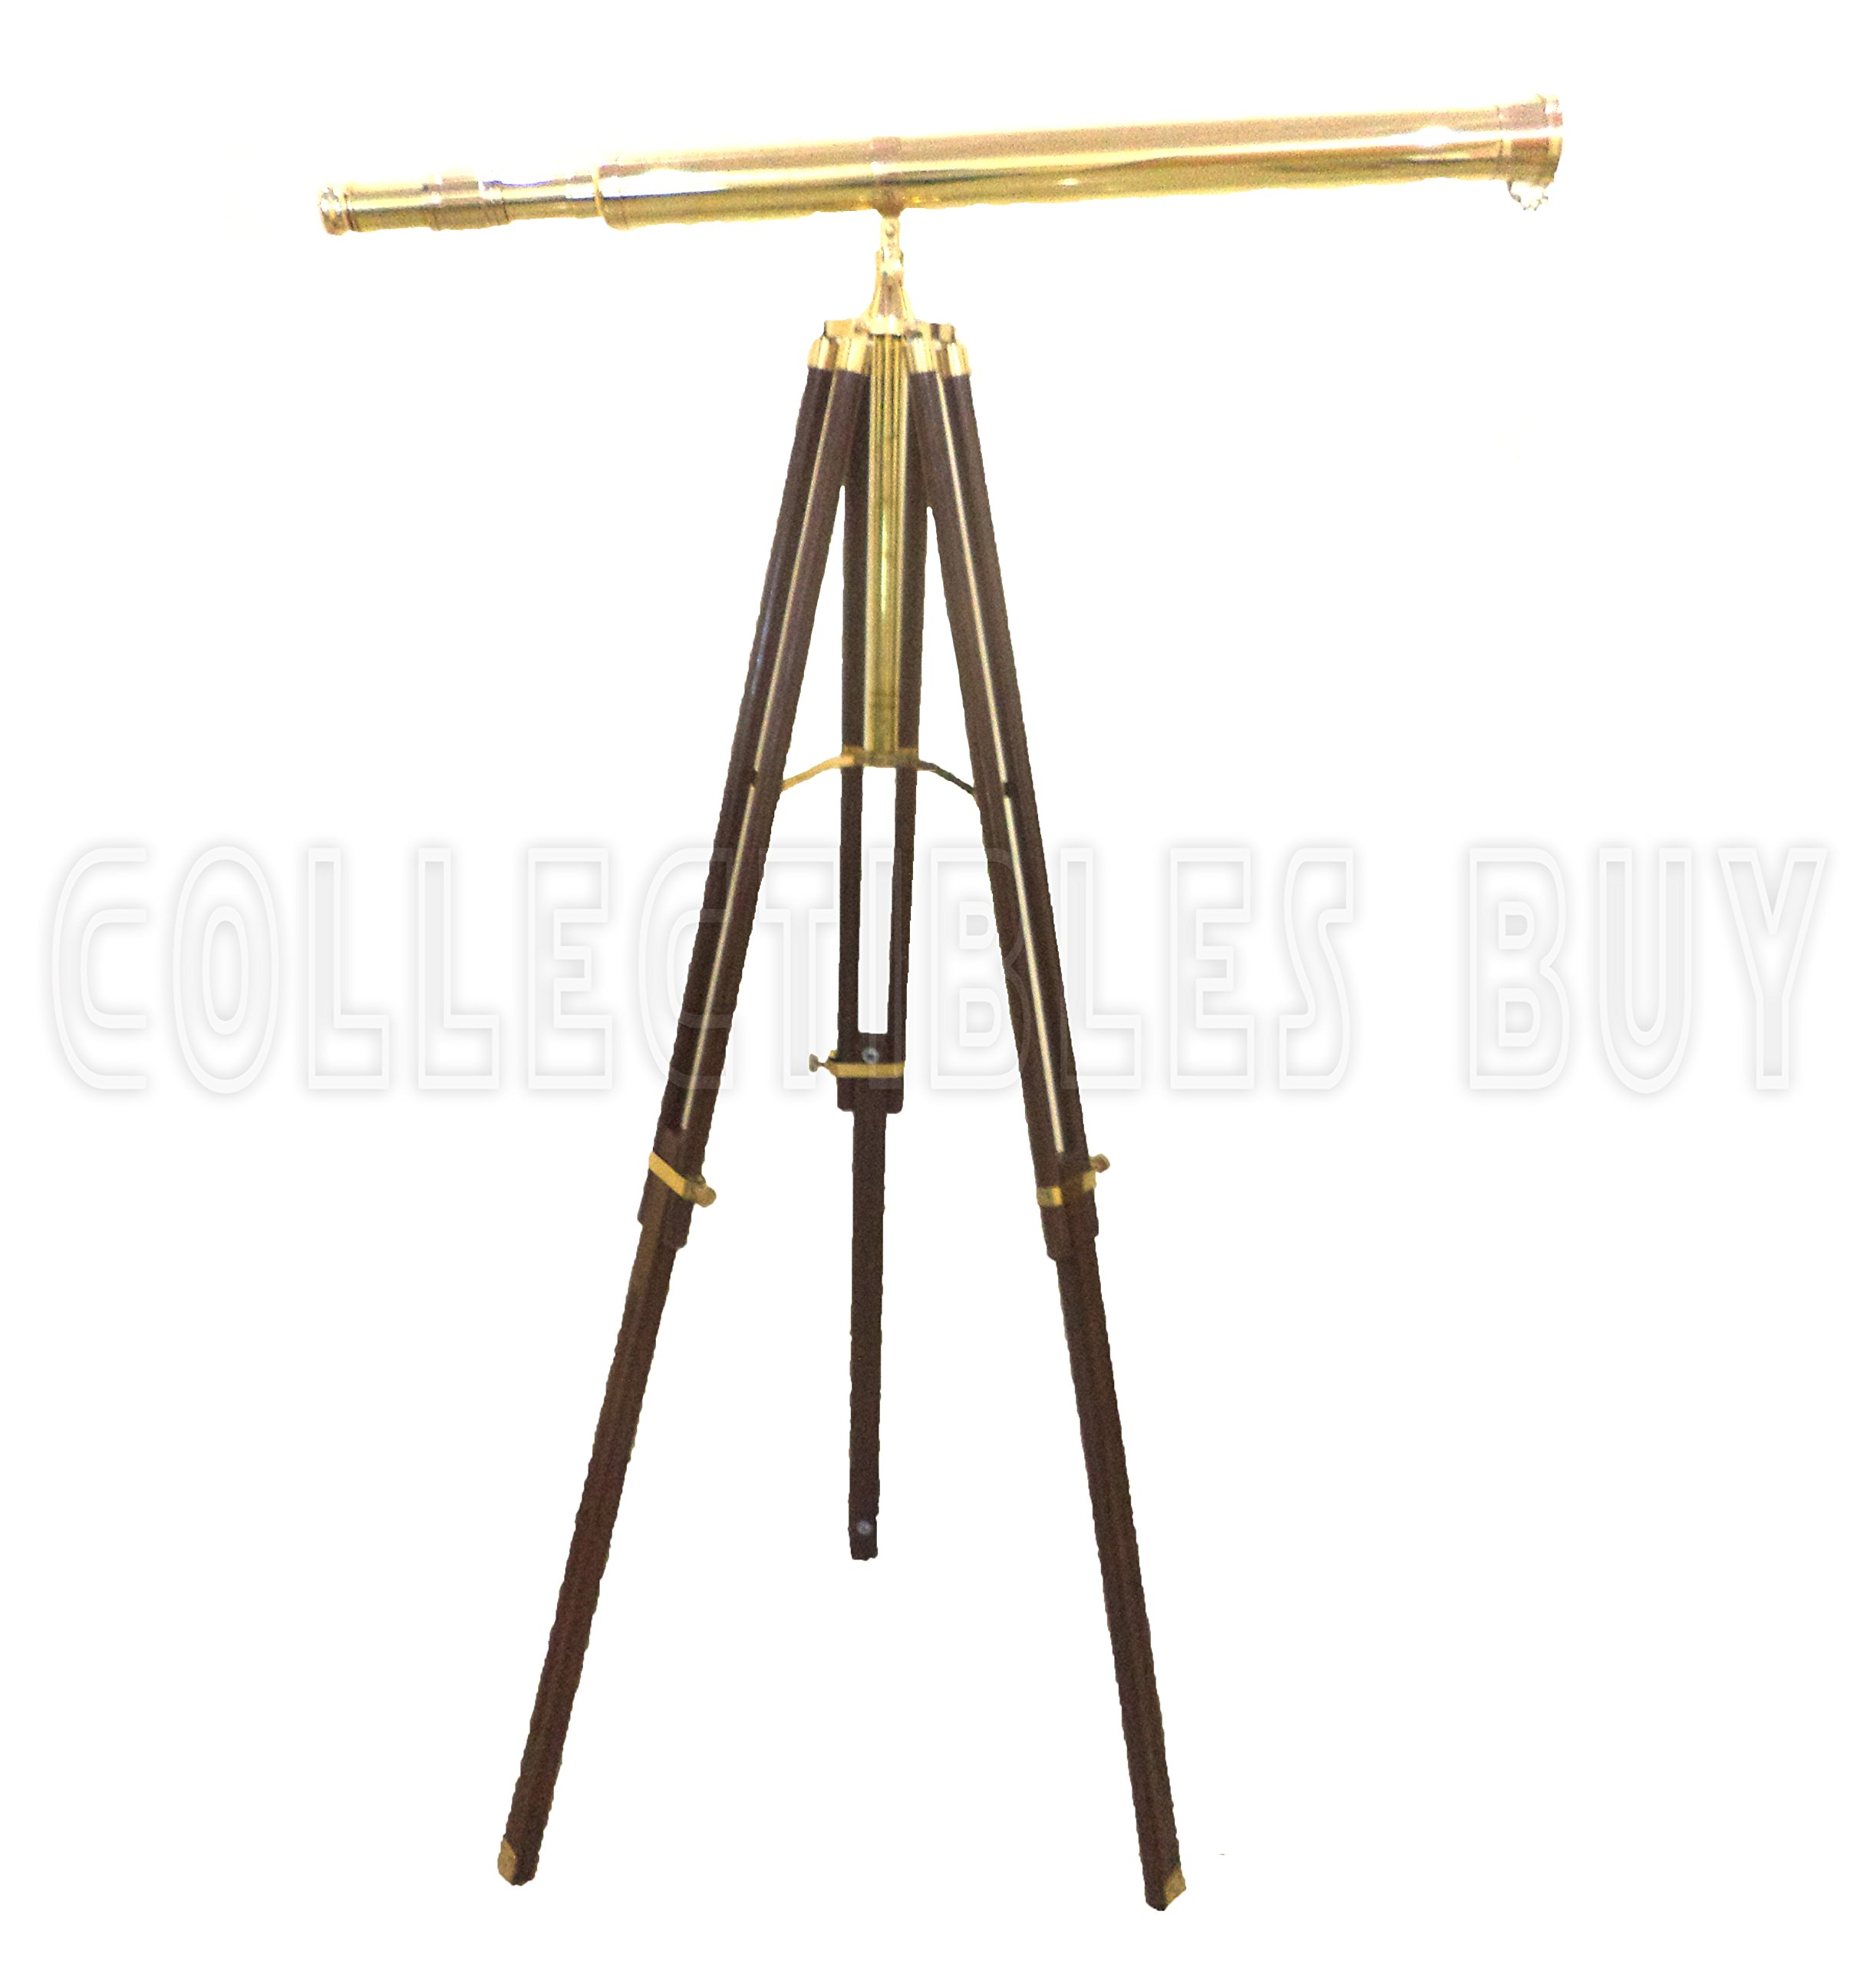 collectiblesBuy Vintage Solid Brass Nautical Port Marine Navy Telescope Single Barrel Brass Finish & Brown (Single Barrel Telescope (Height:65'' Inches)) by Collectibles Buy